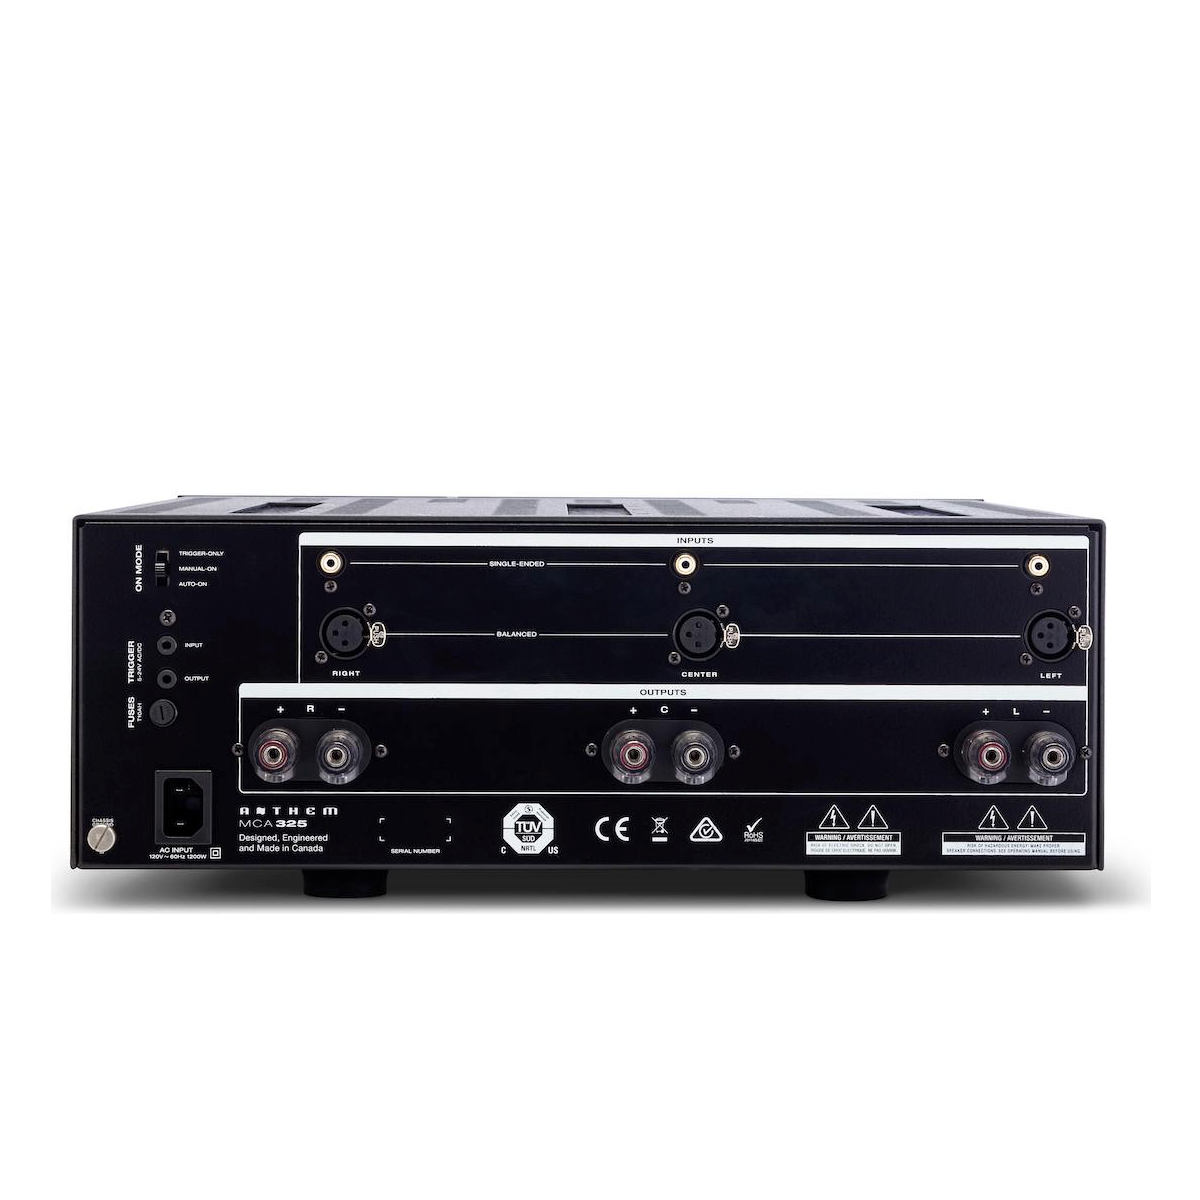 Anthem MCA 325 - 3 Channel Power Amplifier, Anthem AV, Power Amplifier - Auratech LLC